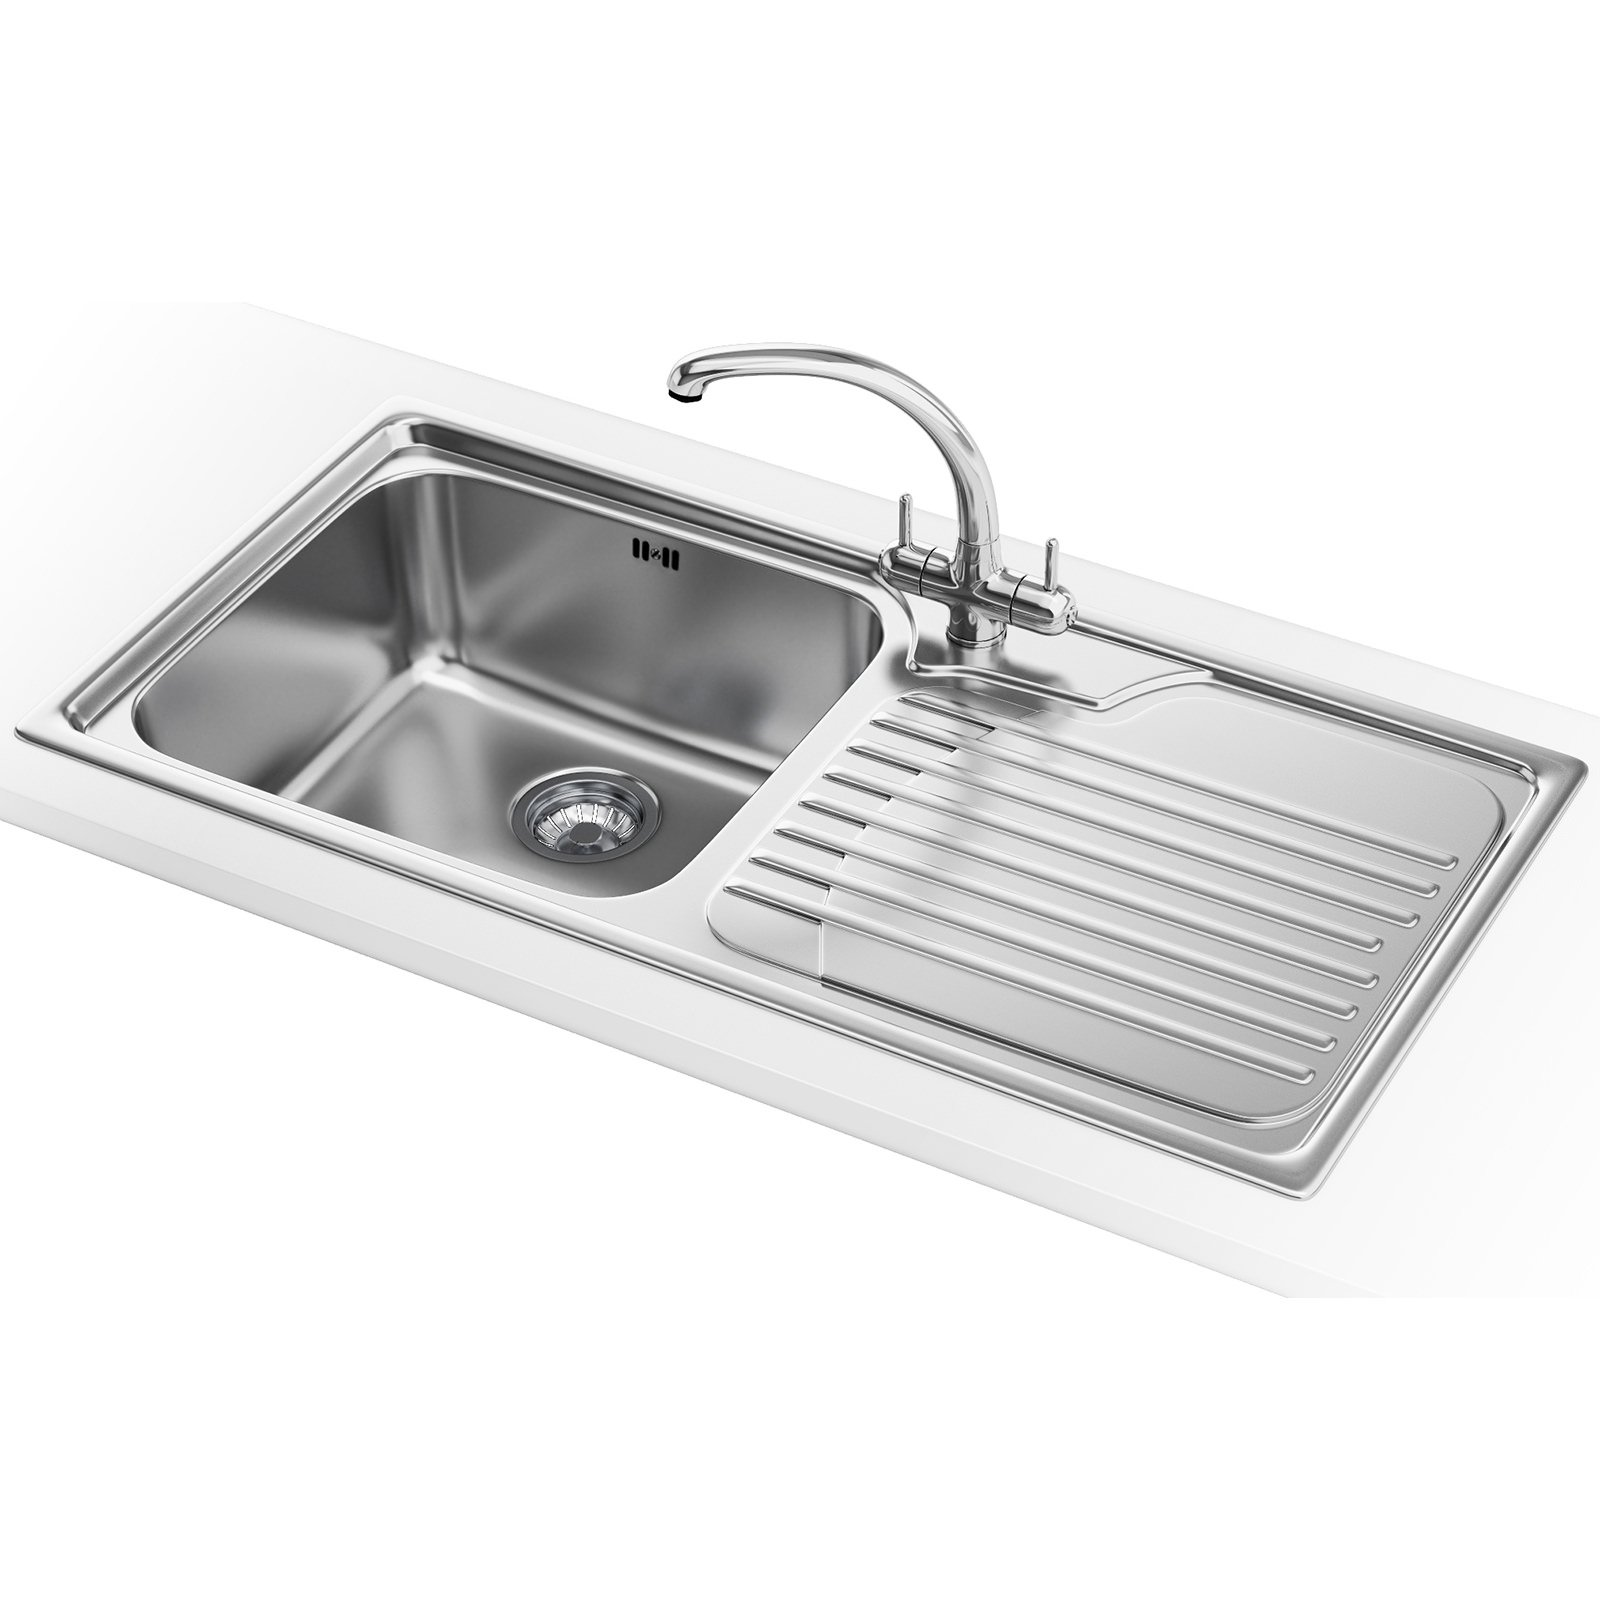 Franke Galassia GAX 611 Propack - Stainless Steel RHD Sink And Tap